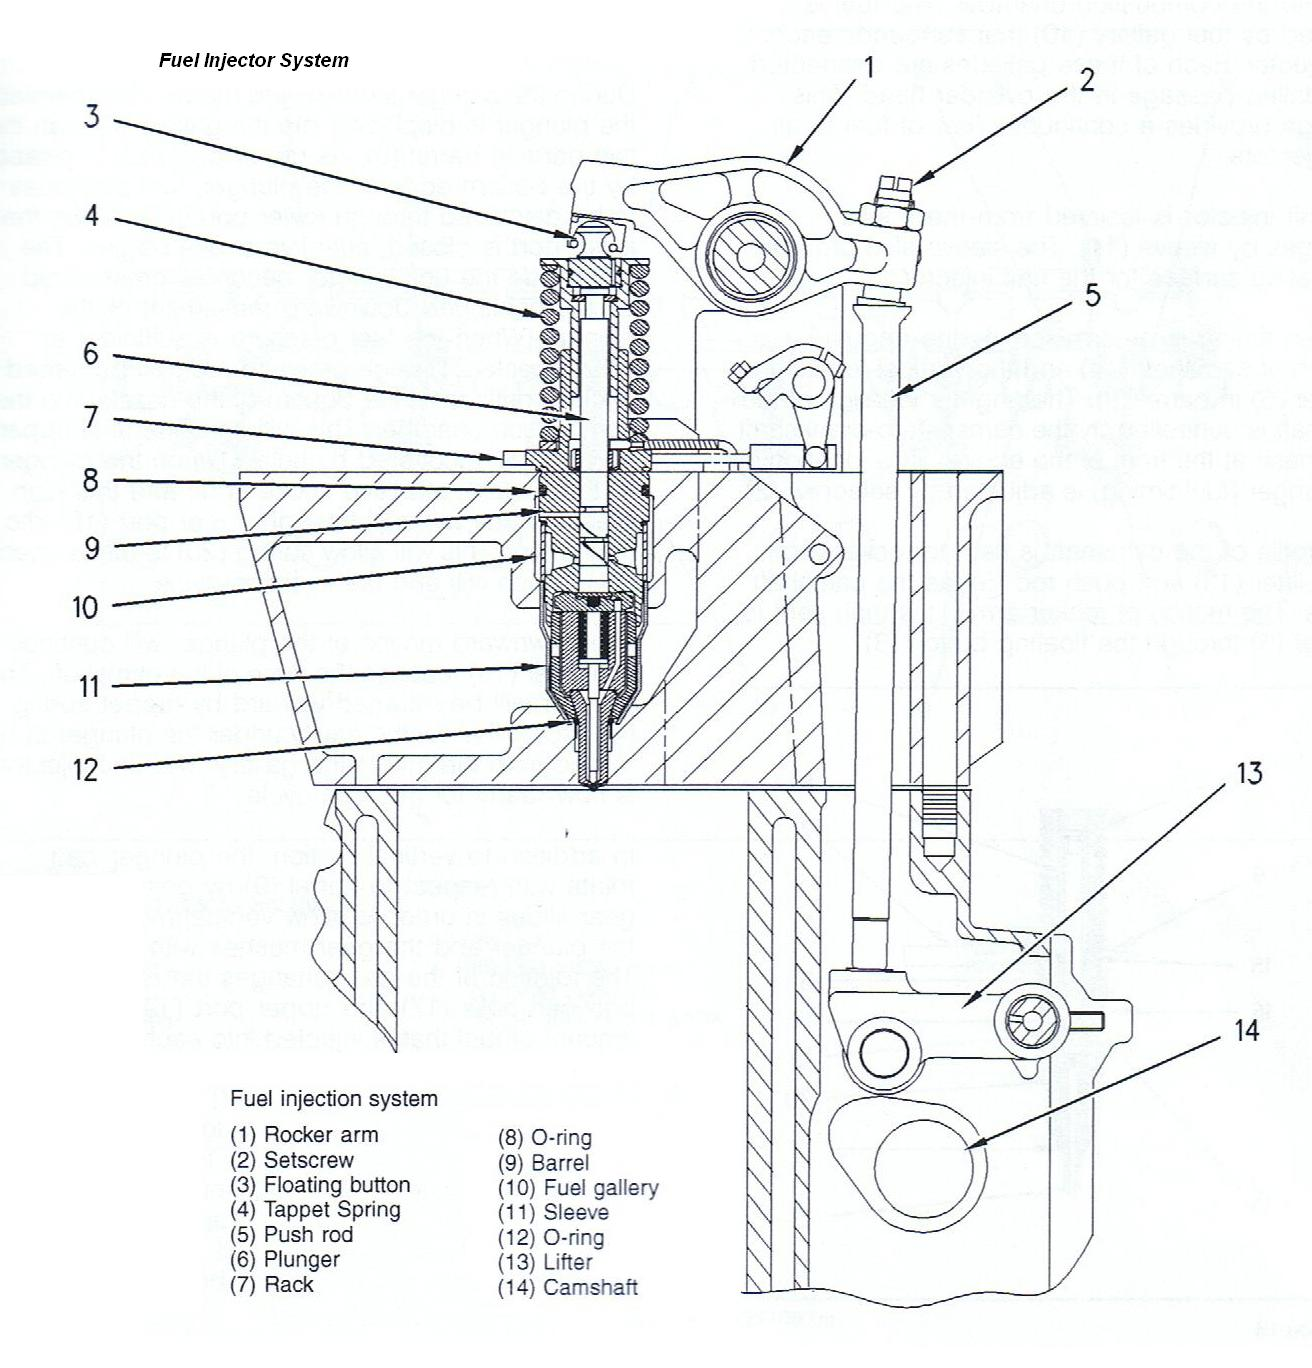 hight resolution of cat 3116 engine diagram wiring diagram compilation caterpillar 3116 marine engine wiring diagram 3116 caterpillar engine diagram